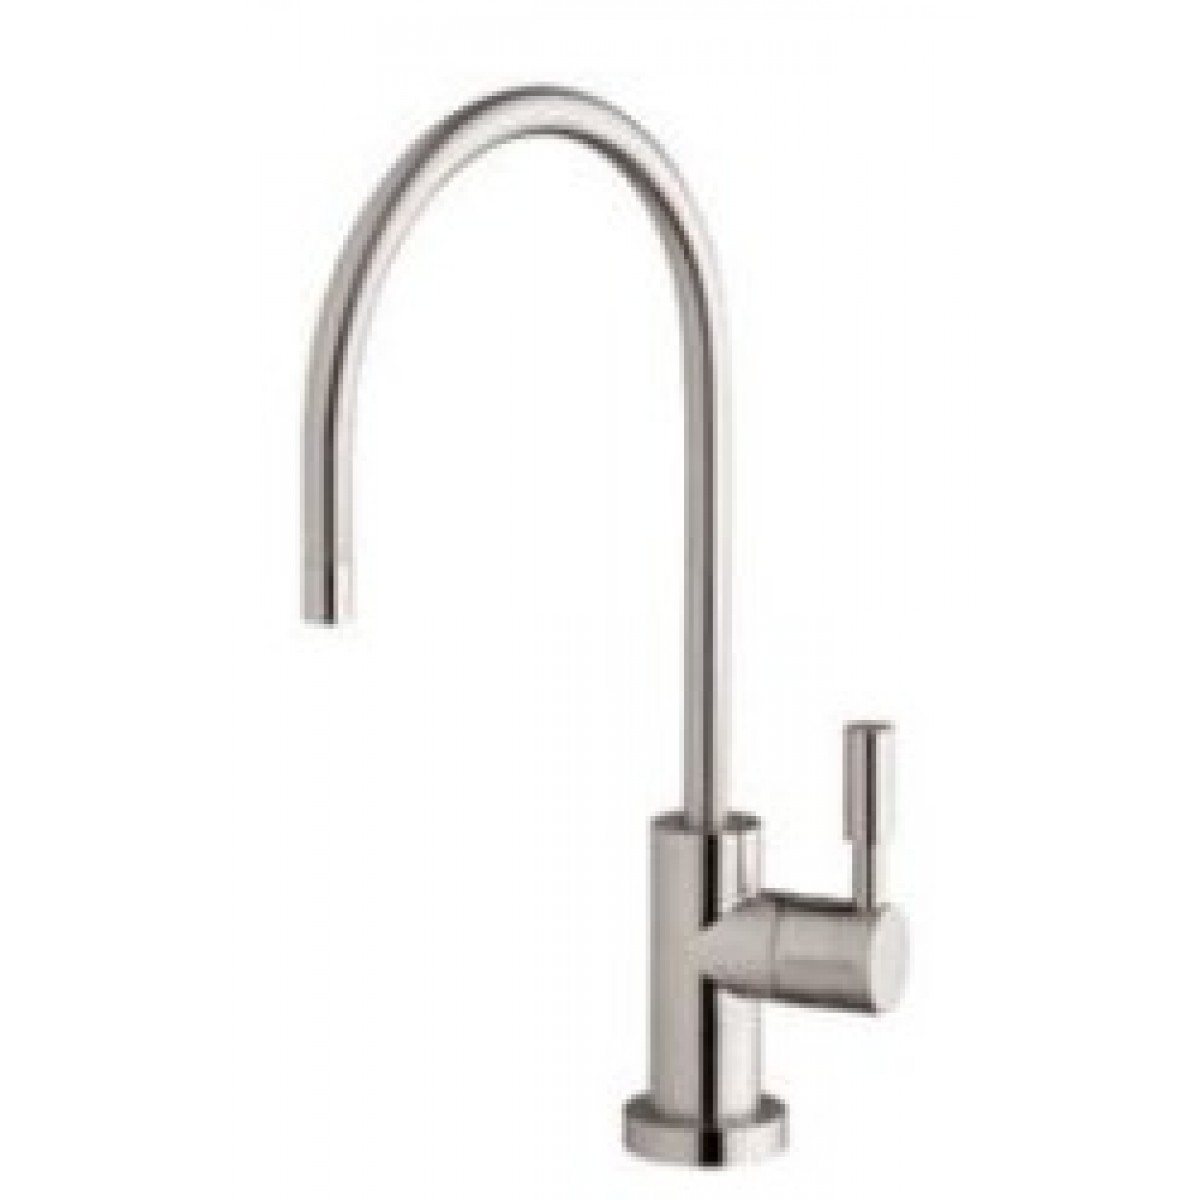 Ideas, replacement faucets for point of use water waterfilters pertaining to dimensions 1200 x 1200  .